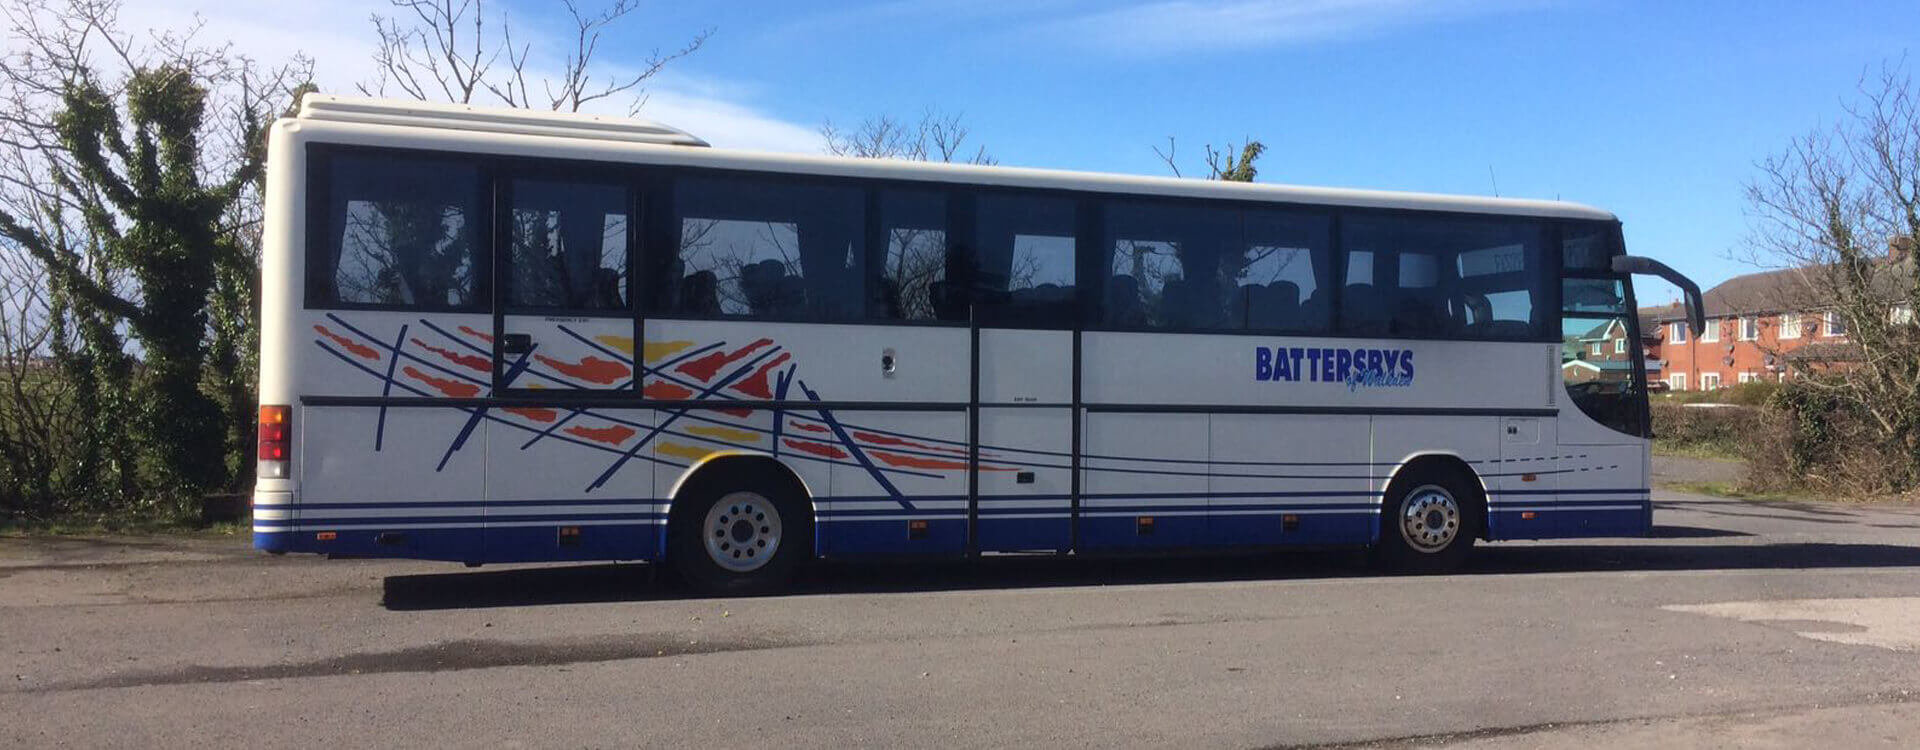 battersbys_coaches_walkden_coach_hire_manchester_bolton_worsley_introduction-1